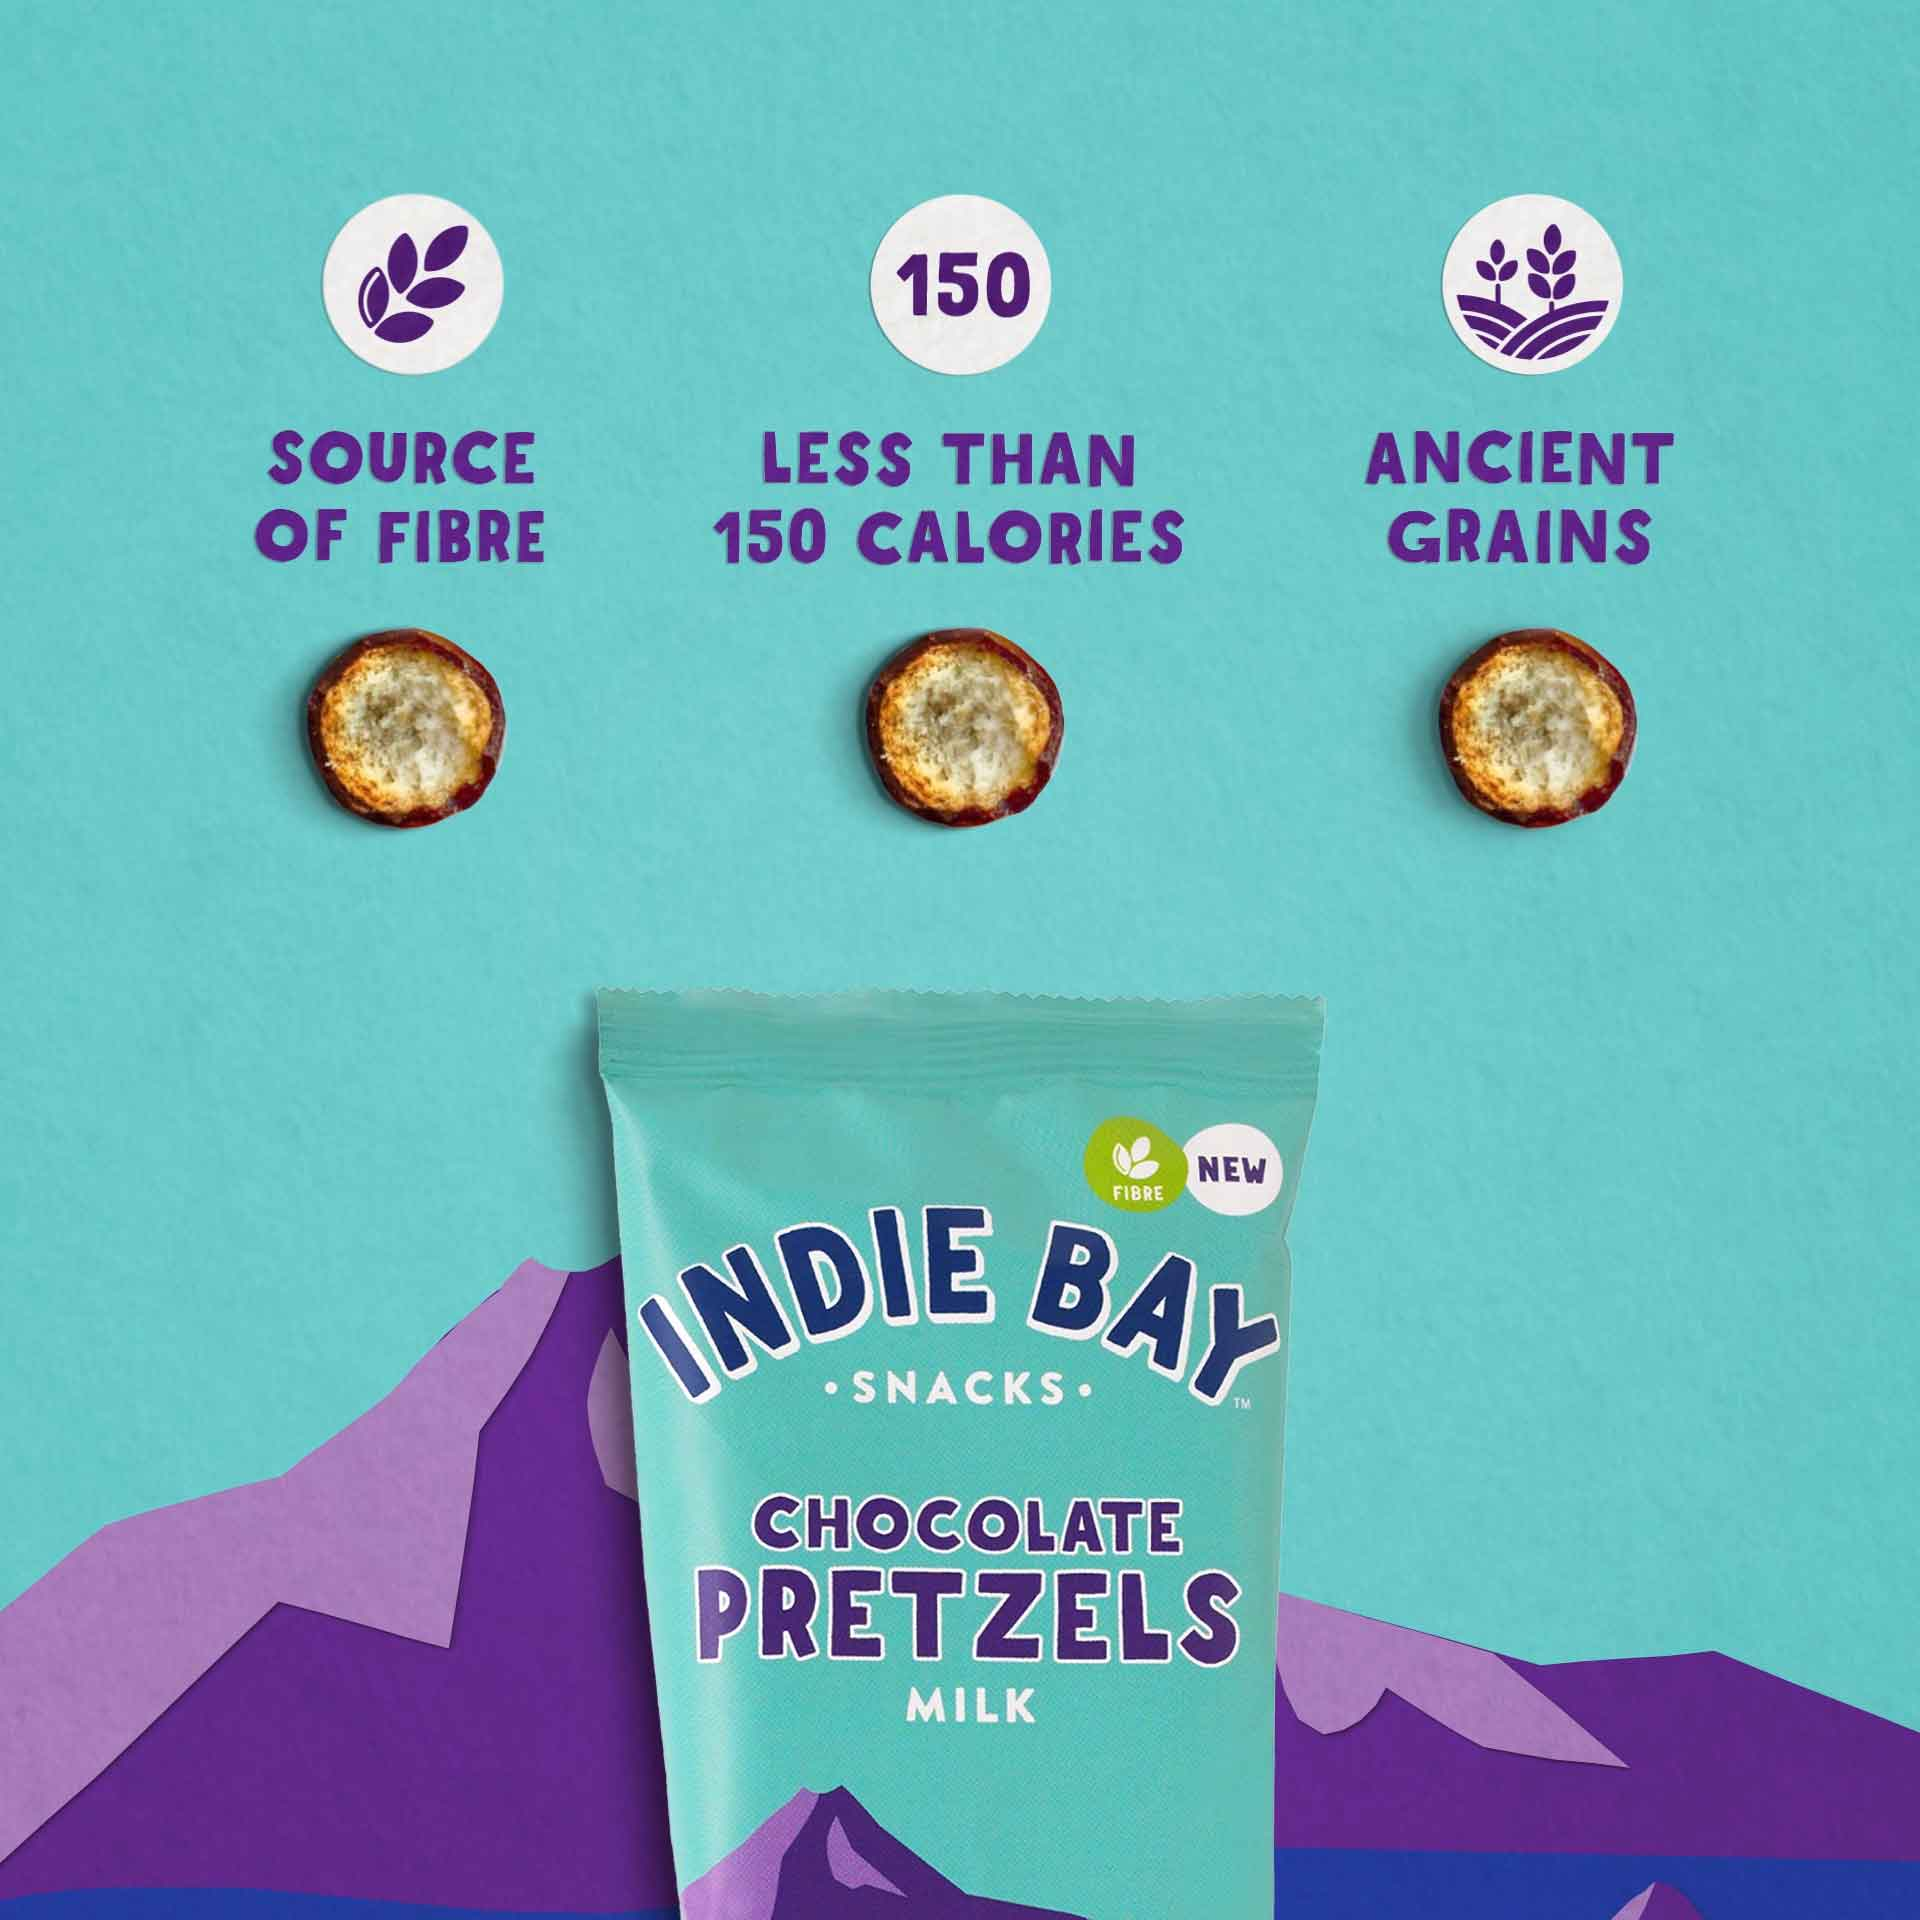 Indie Bay Snacks animation